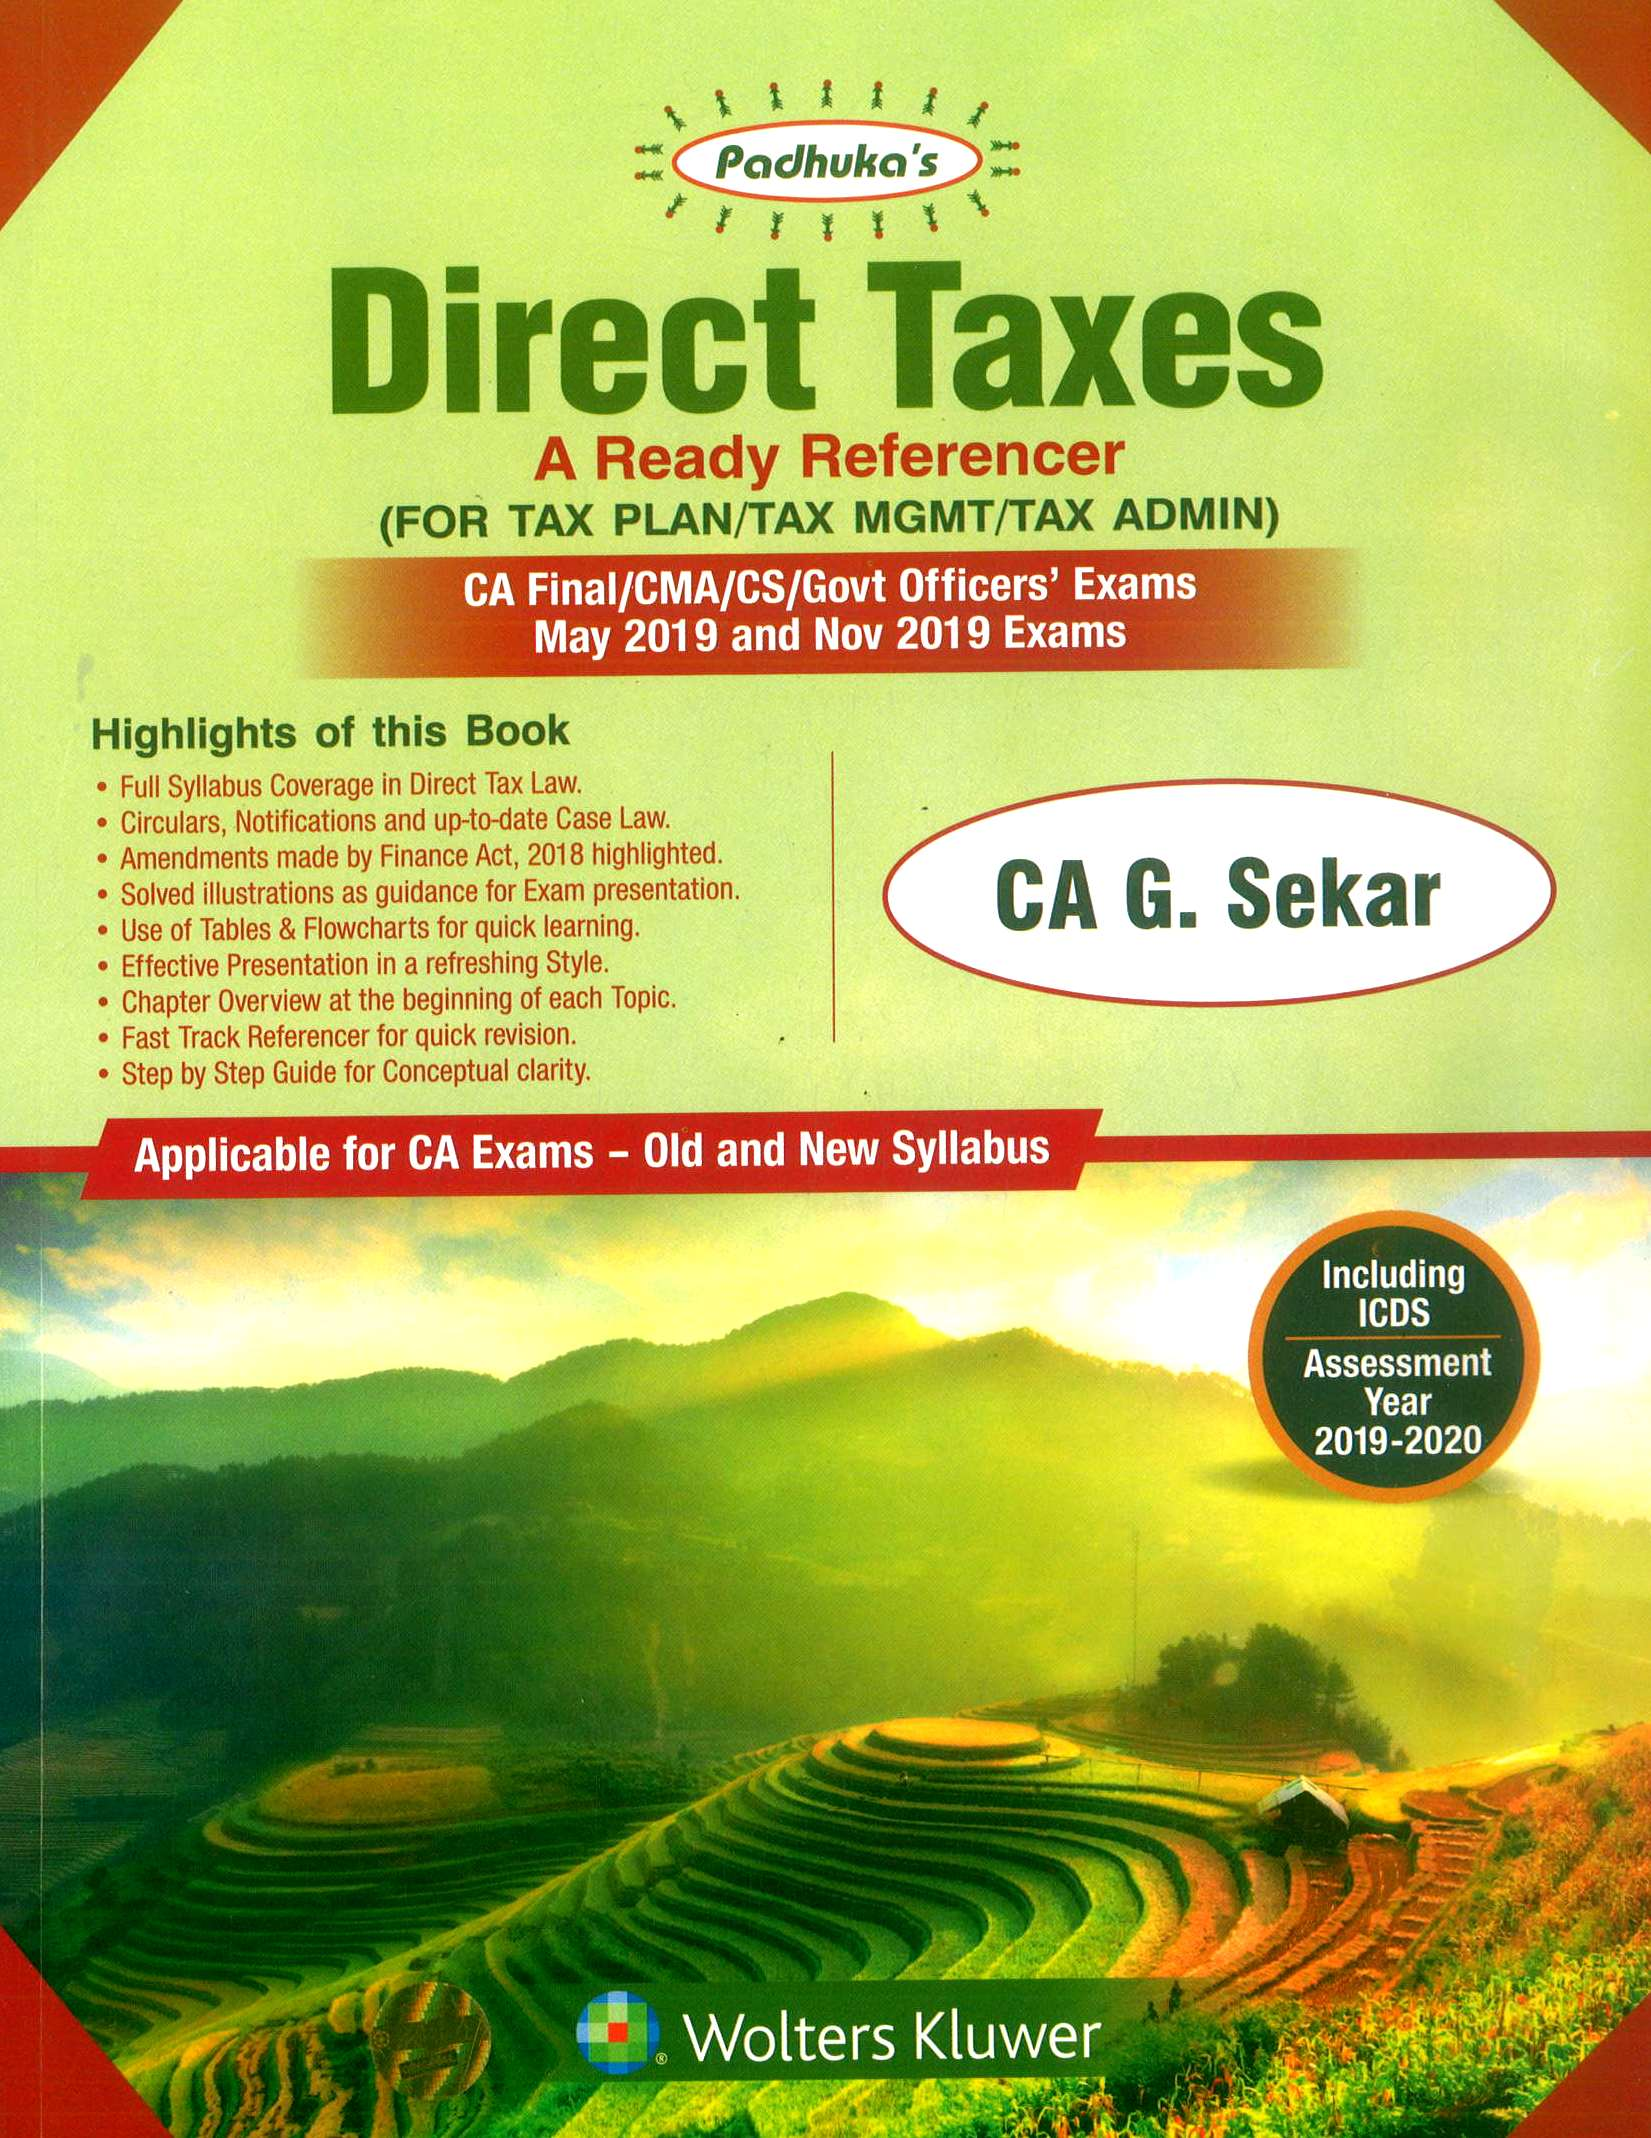 Padhuka Direct Taxes A ready Reference for CA Final for May/Nov 2019 Exam (Old & New Syllabus) by CA G. Sekar (Wolters Kluwer Publishing) Edition 19th dec 2018